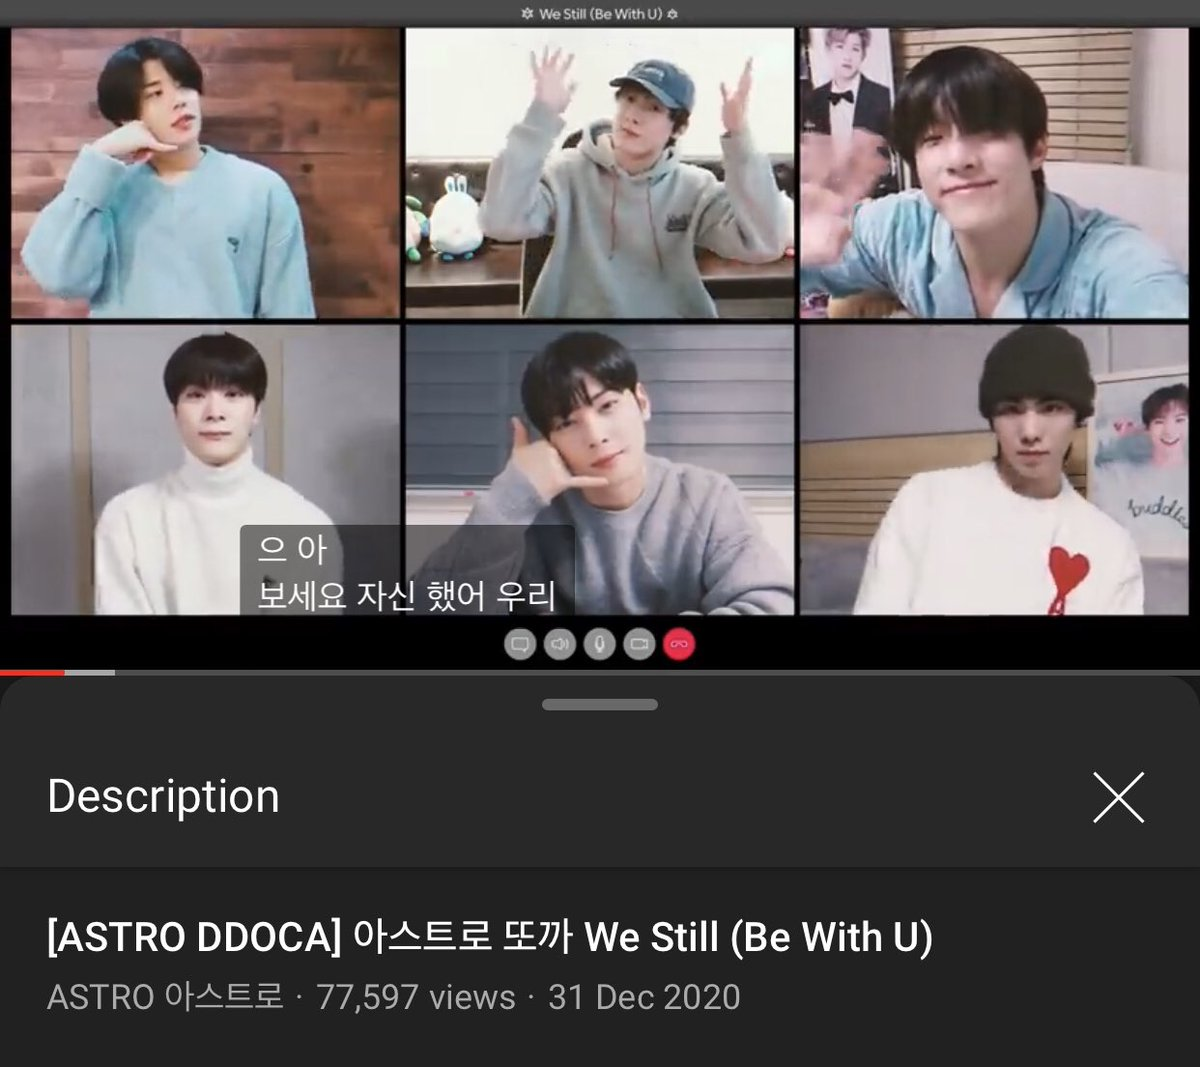 [📈] 210101 1:00 AM KST 'We Still (Be With U)' DDOCA Official Channel: 77,597 views (🔺2,050) 🔗youtu.be/zyk2KpV6avk Naver TV: 94,282 views (🔺1,828) 🔗naver.me/FVPwMoN9 [ #아스트로 #ASTRO_BeWithU @offclASTRO ]